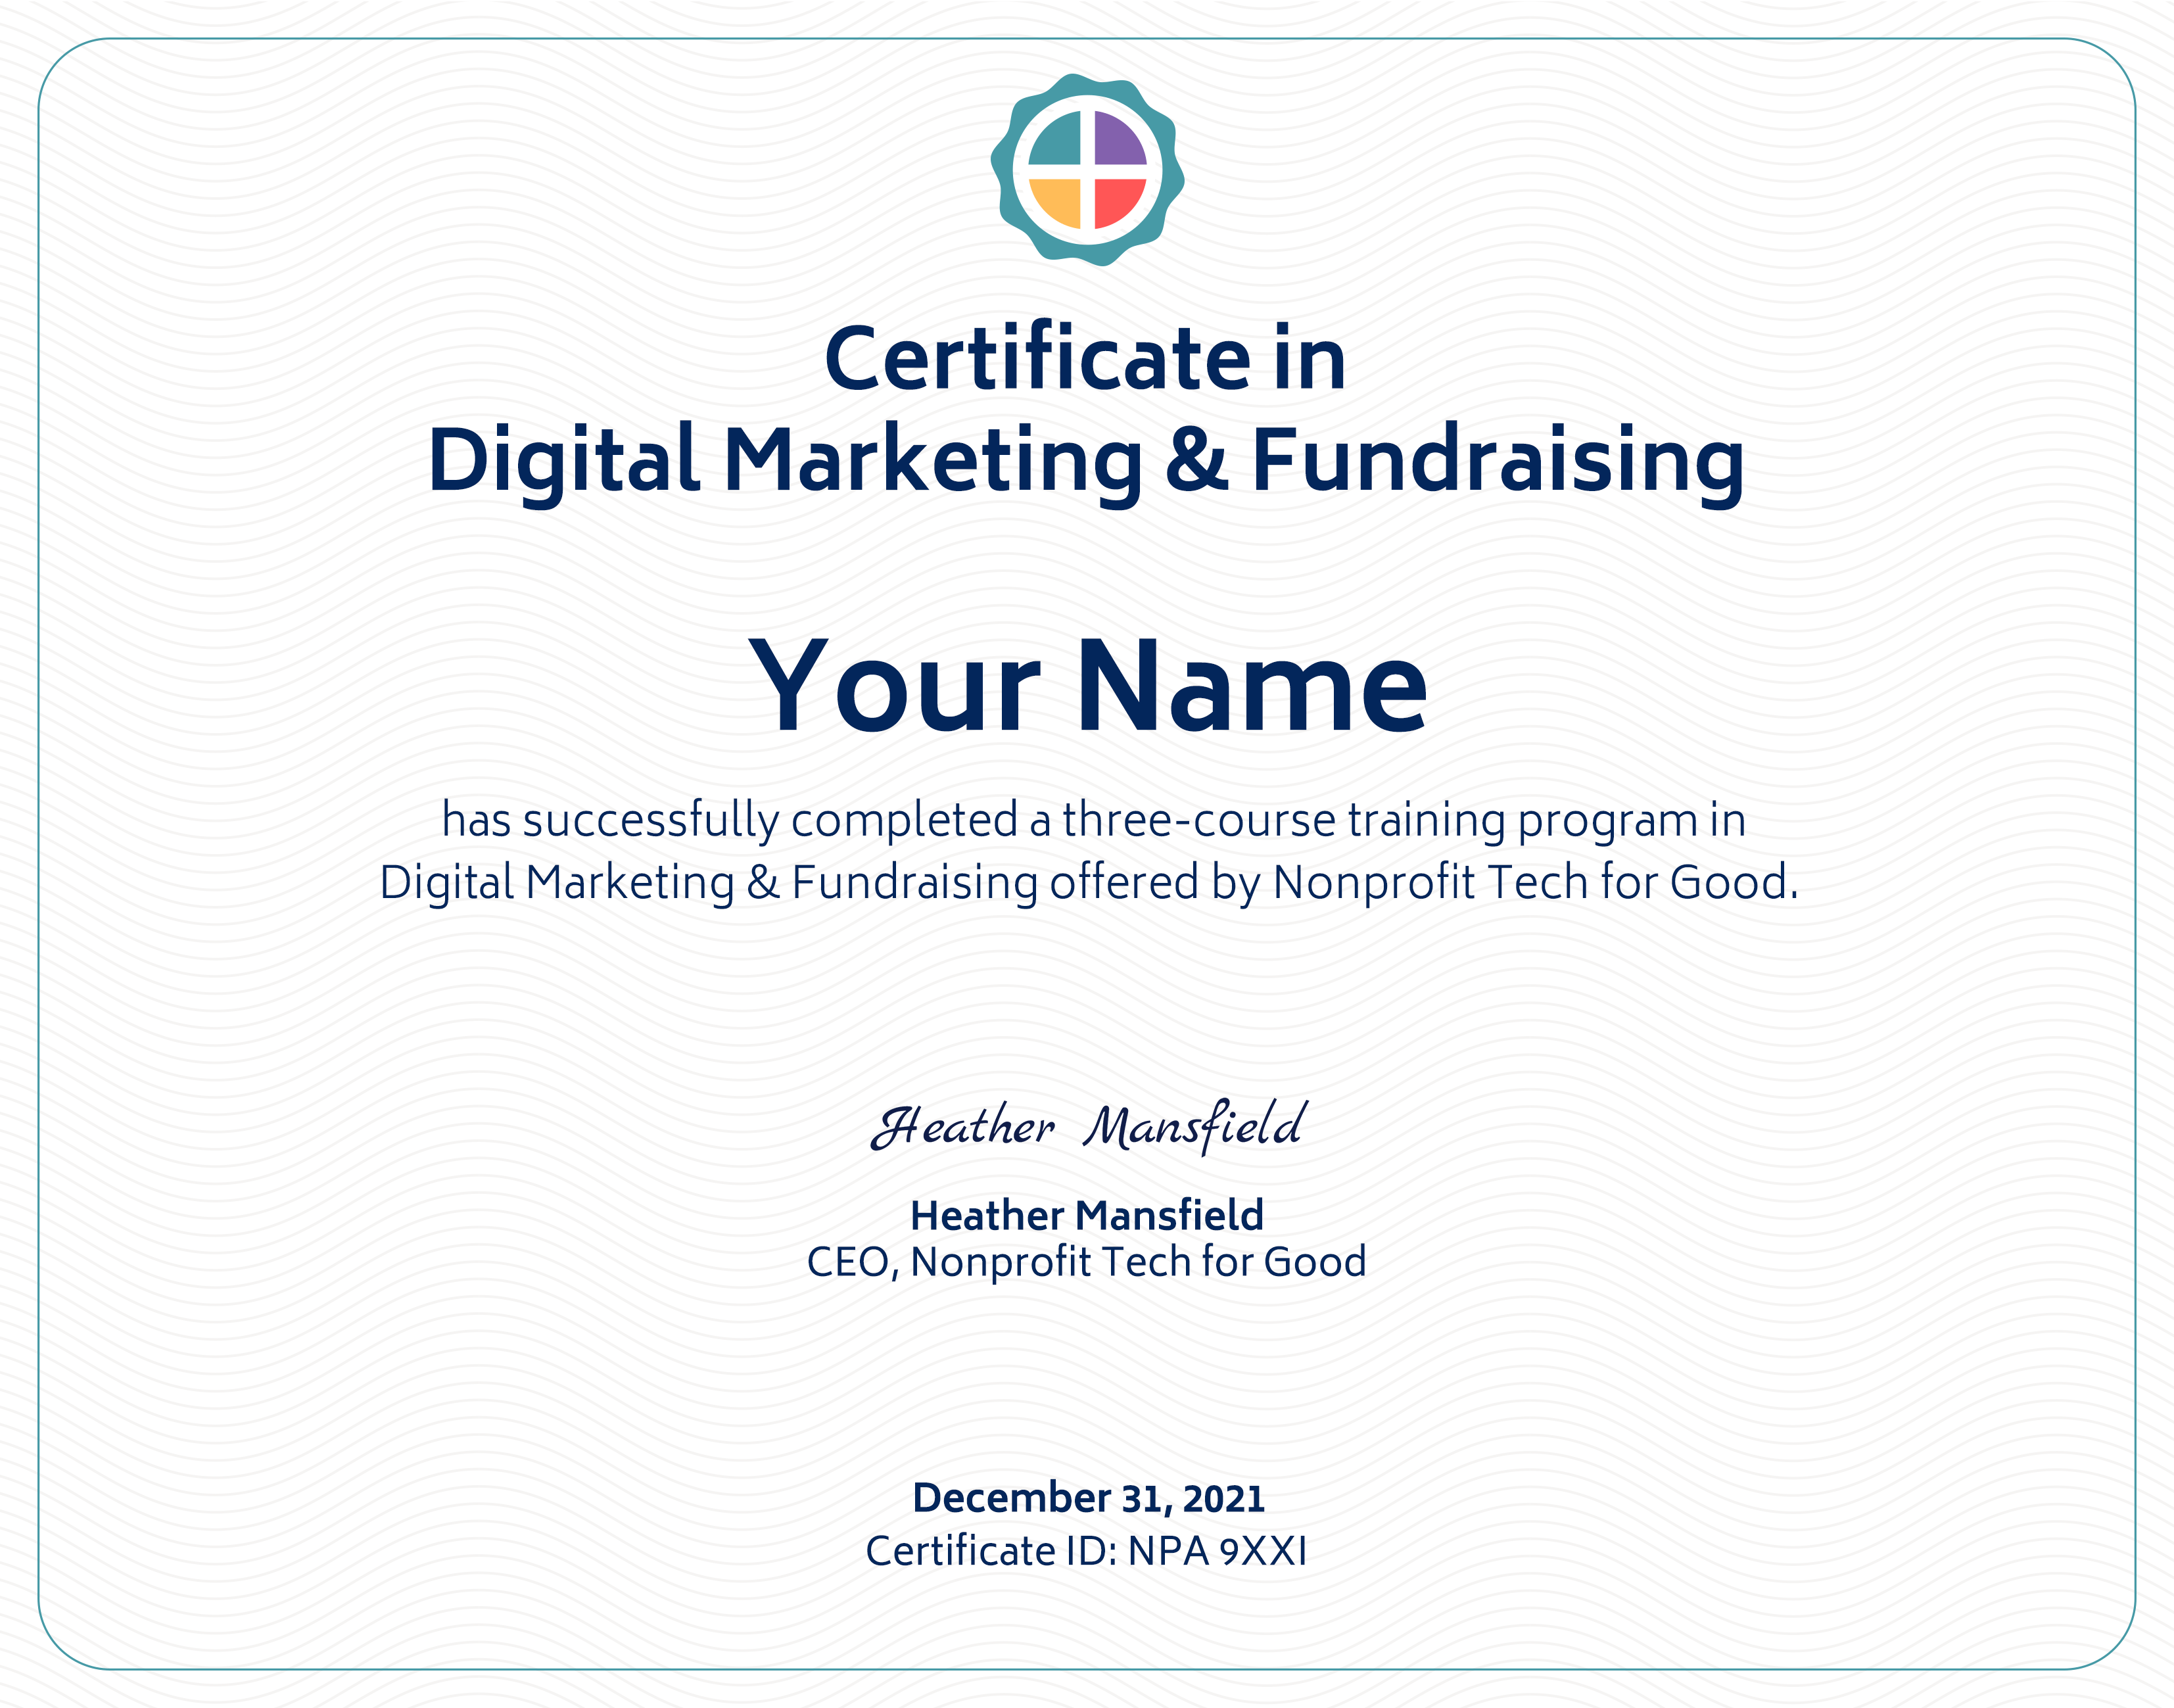 Earn a Certificate in Digital Marketing & Fundraising from Nonprofit Tech for Good